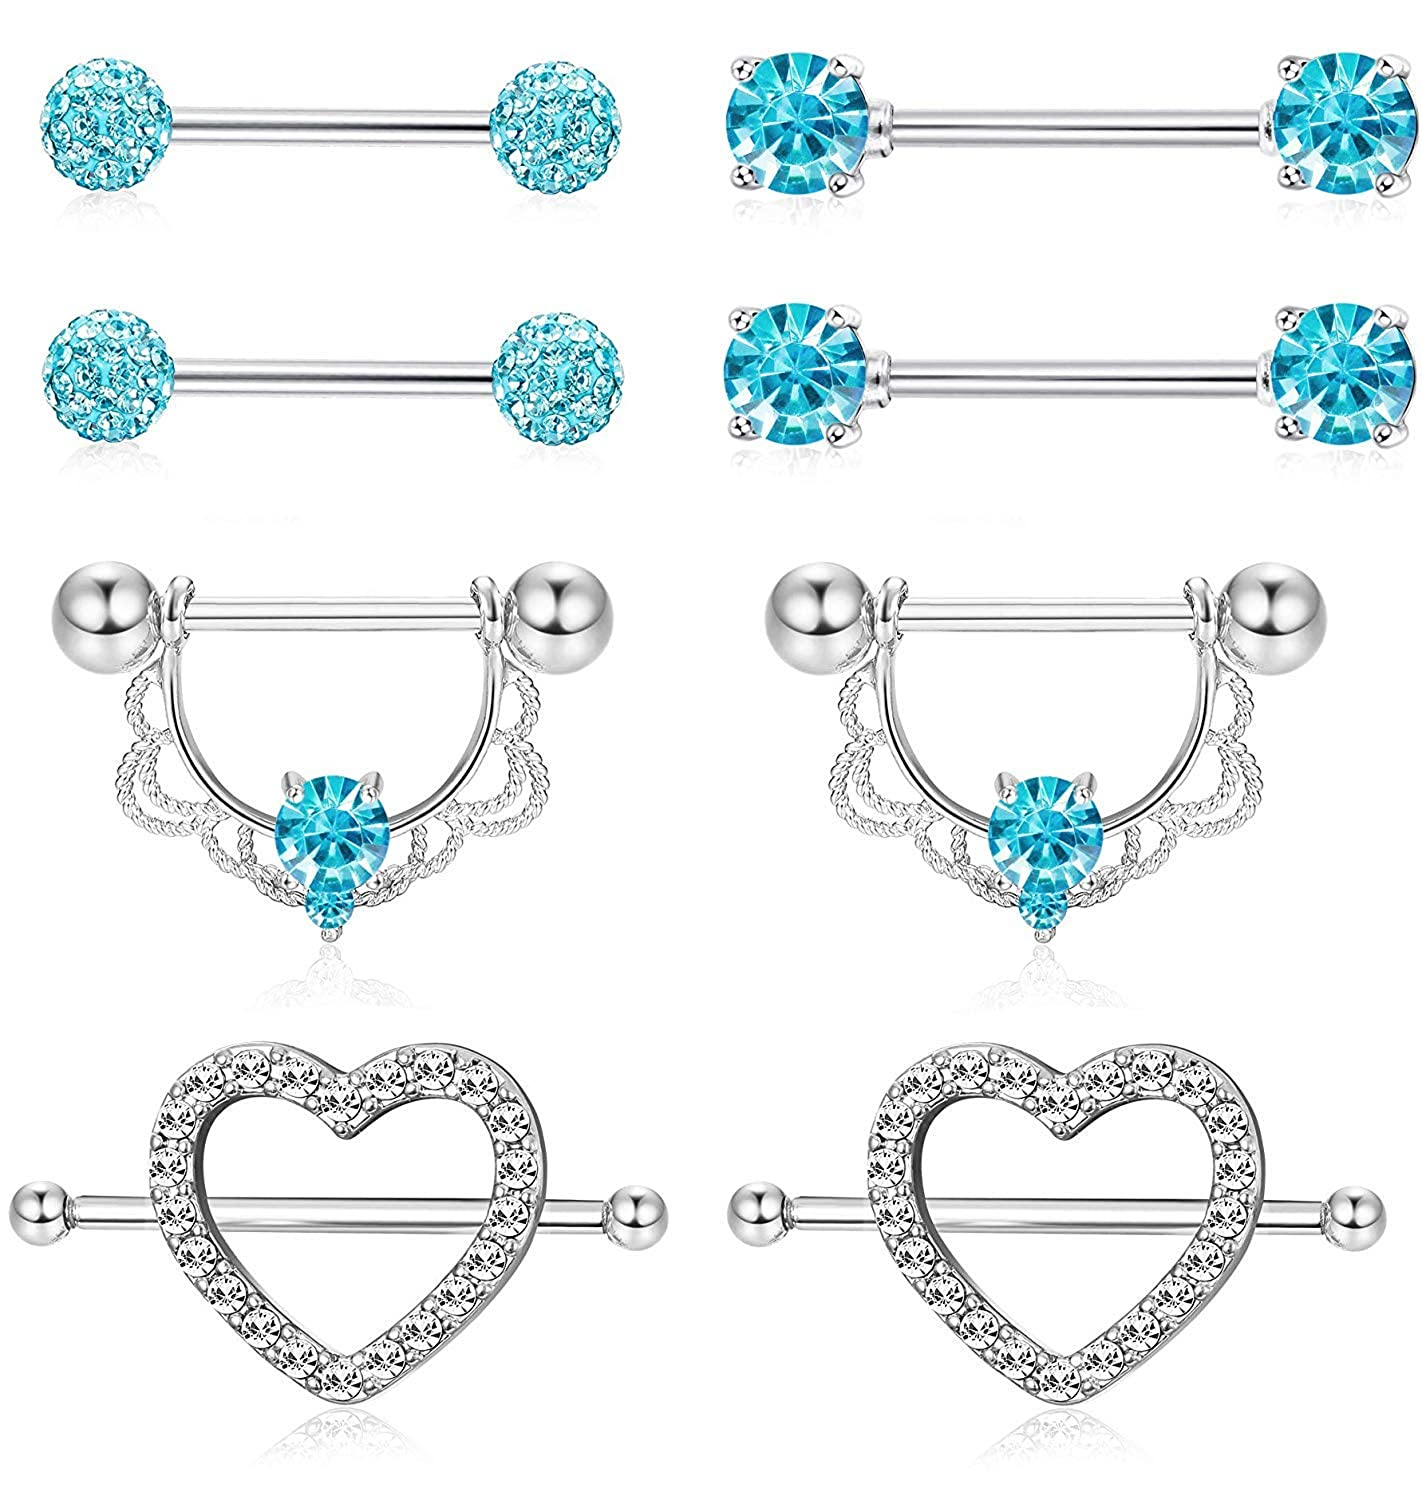 Blinst 4 Pairs 14G Stainless Steel Nipplerings Nipple Tongue Rings CZ Opal Barbell Body Piercing Jewelry